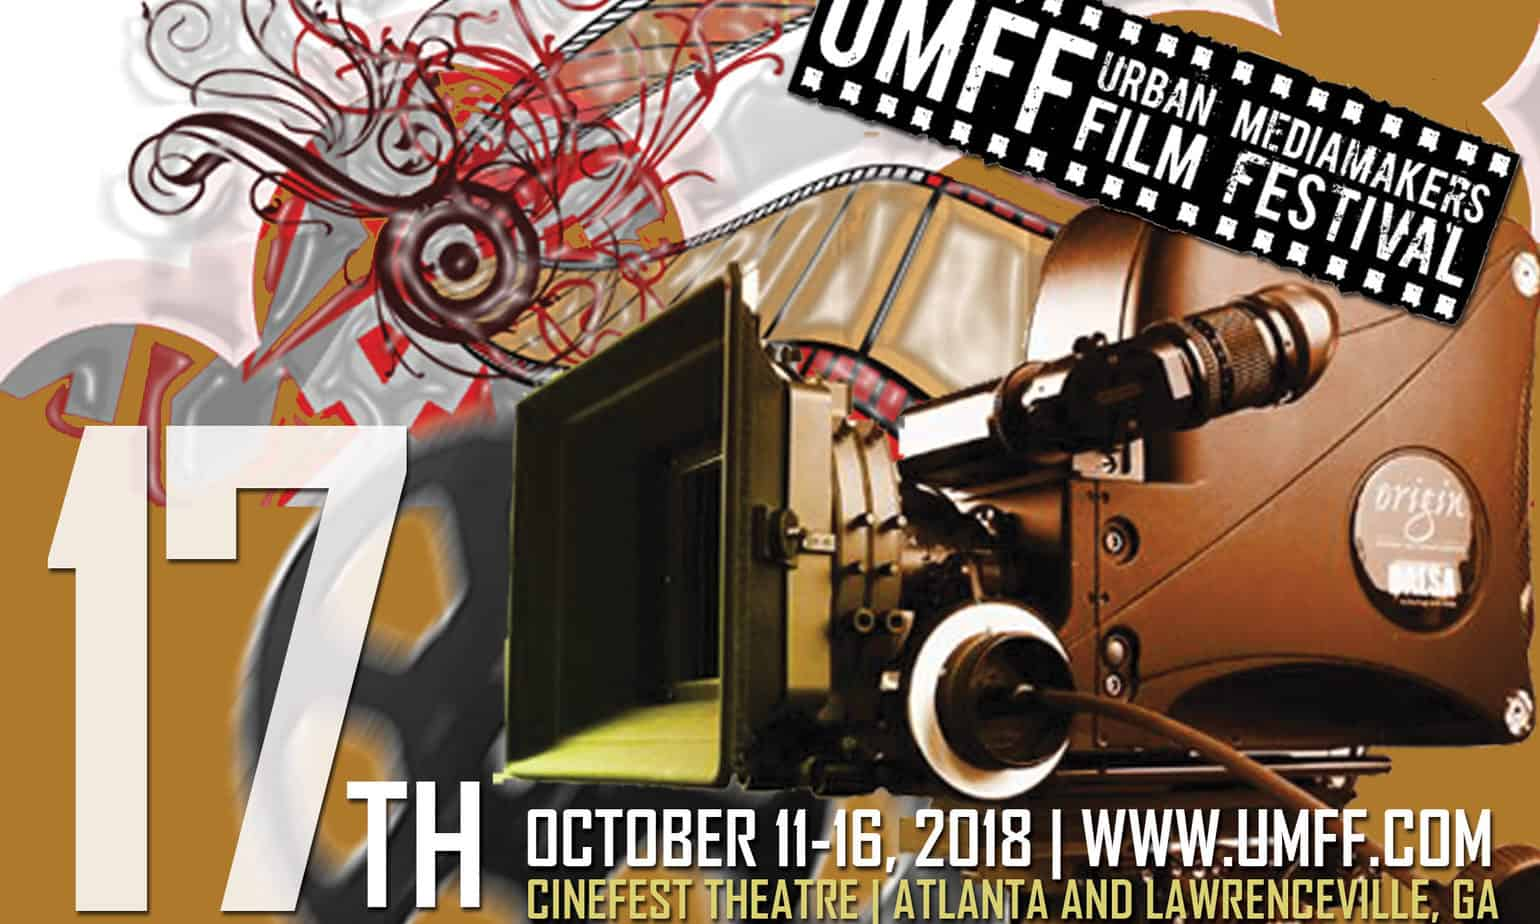 17th Urban Mediamakers Film Festival (UMFF)